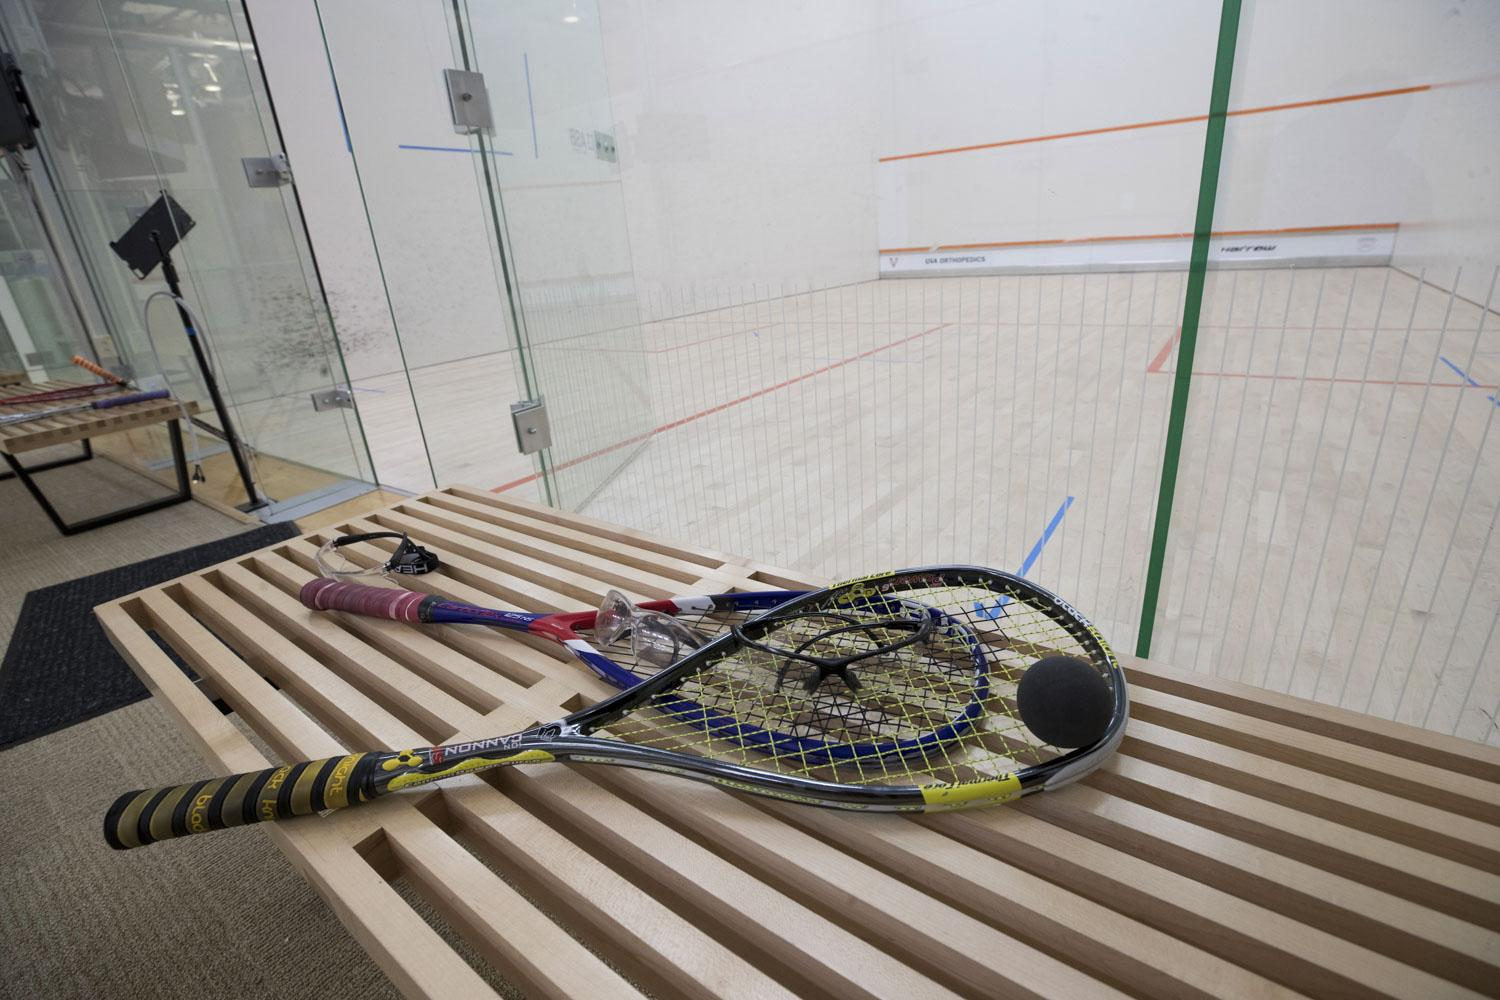 After a just-completed expansion, the McArthur Squash Center, which opened in 2013, now has 14 singles courts and two doubles courts.